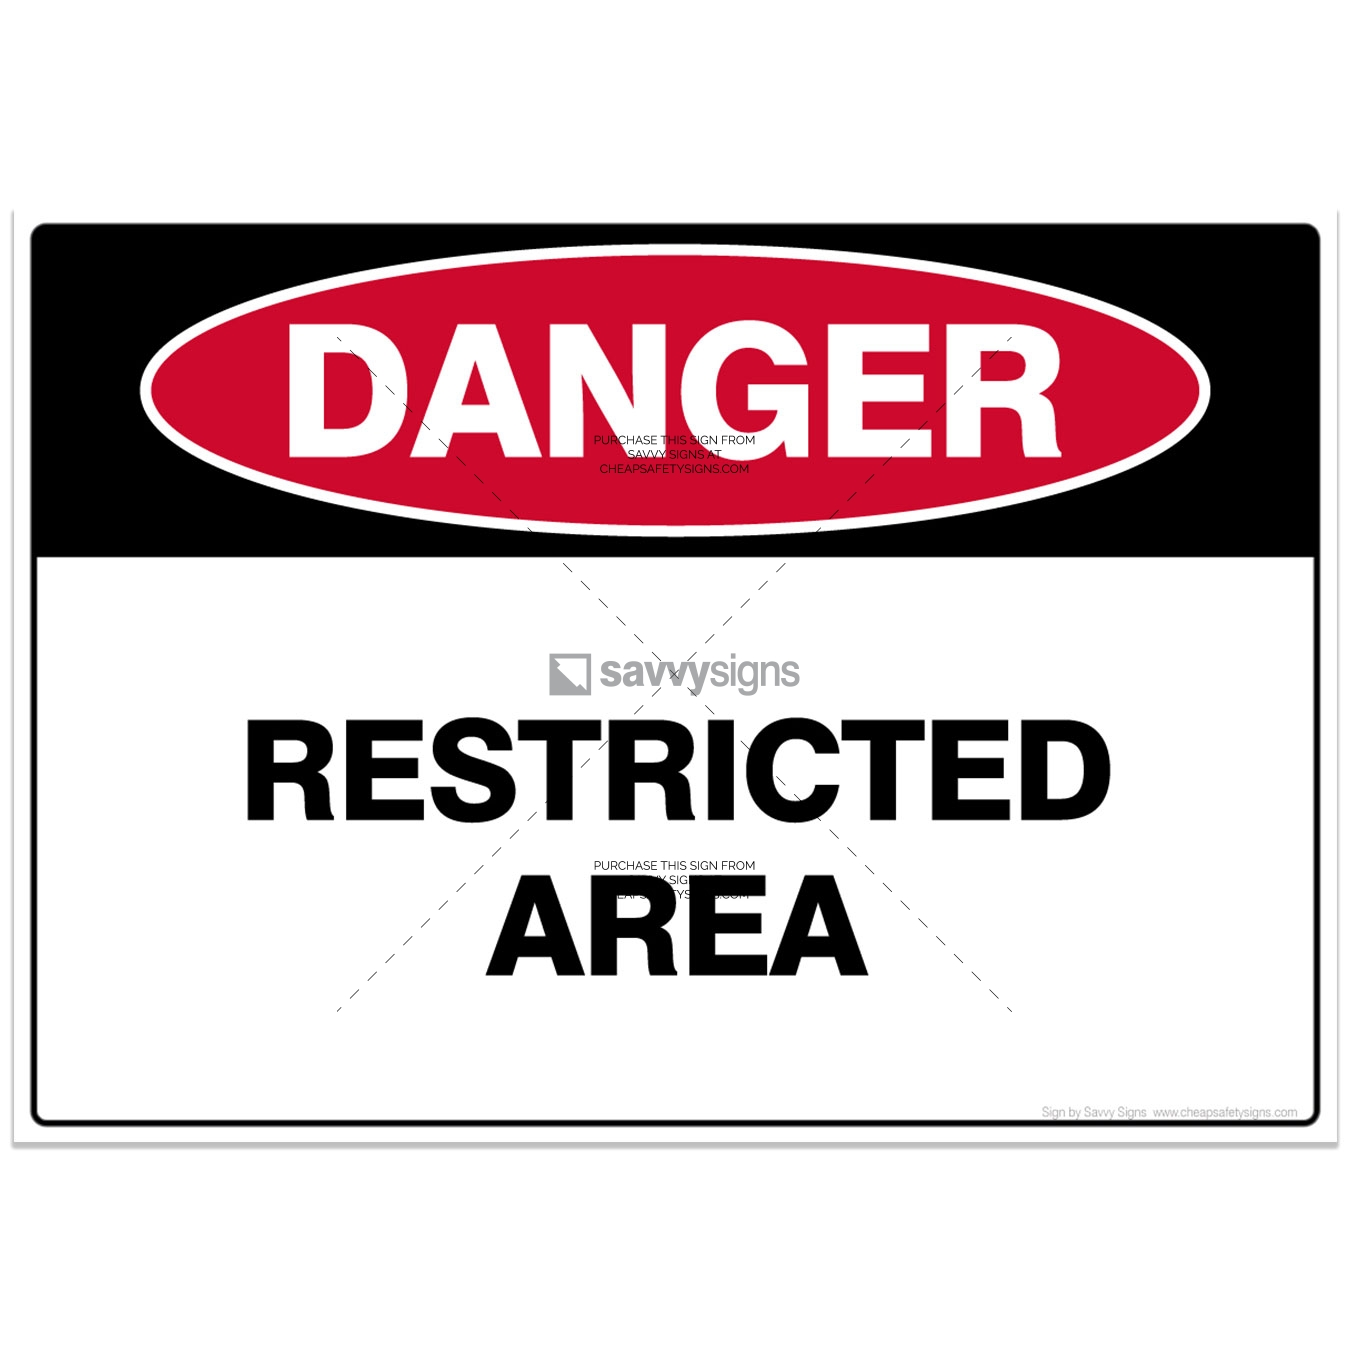 SSDAN3063-DANGER-Workplace-Safety-Signs_Savvy-Signs_v4.1